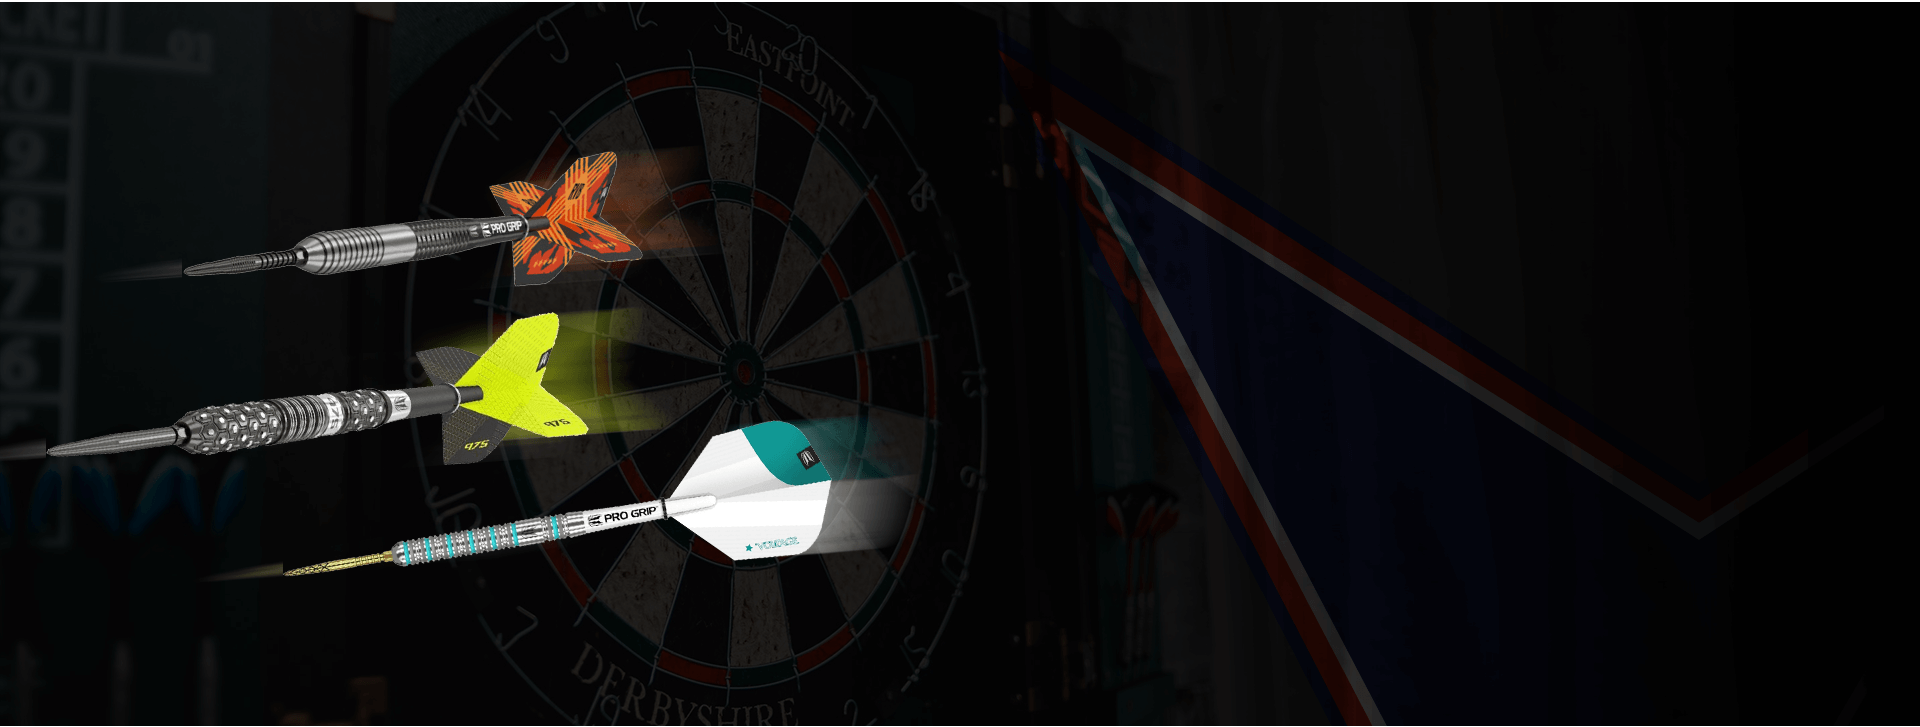 Darts, Dartboards, Dartboard Surround, Dartboard light, Dart mat and dart accessories.